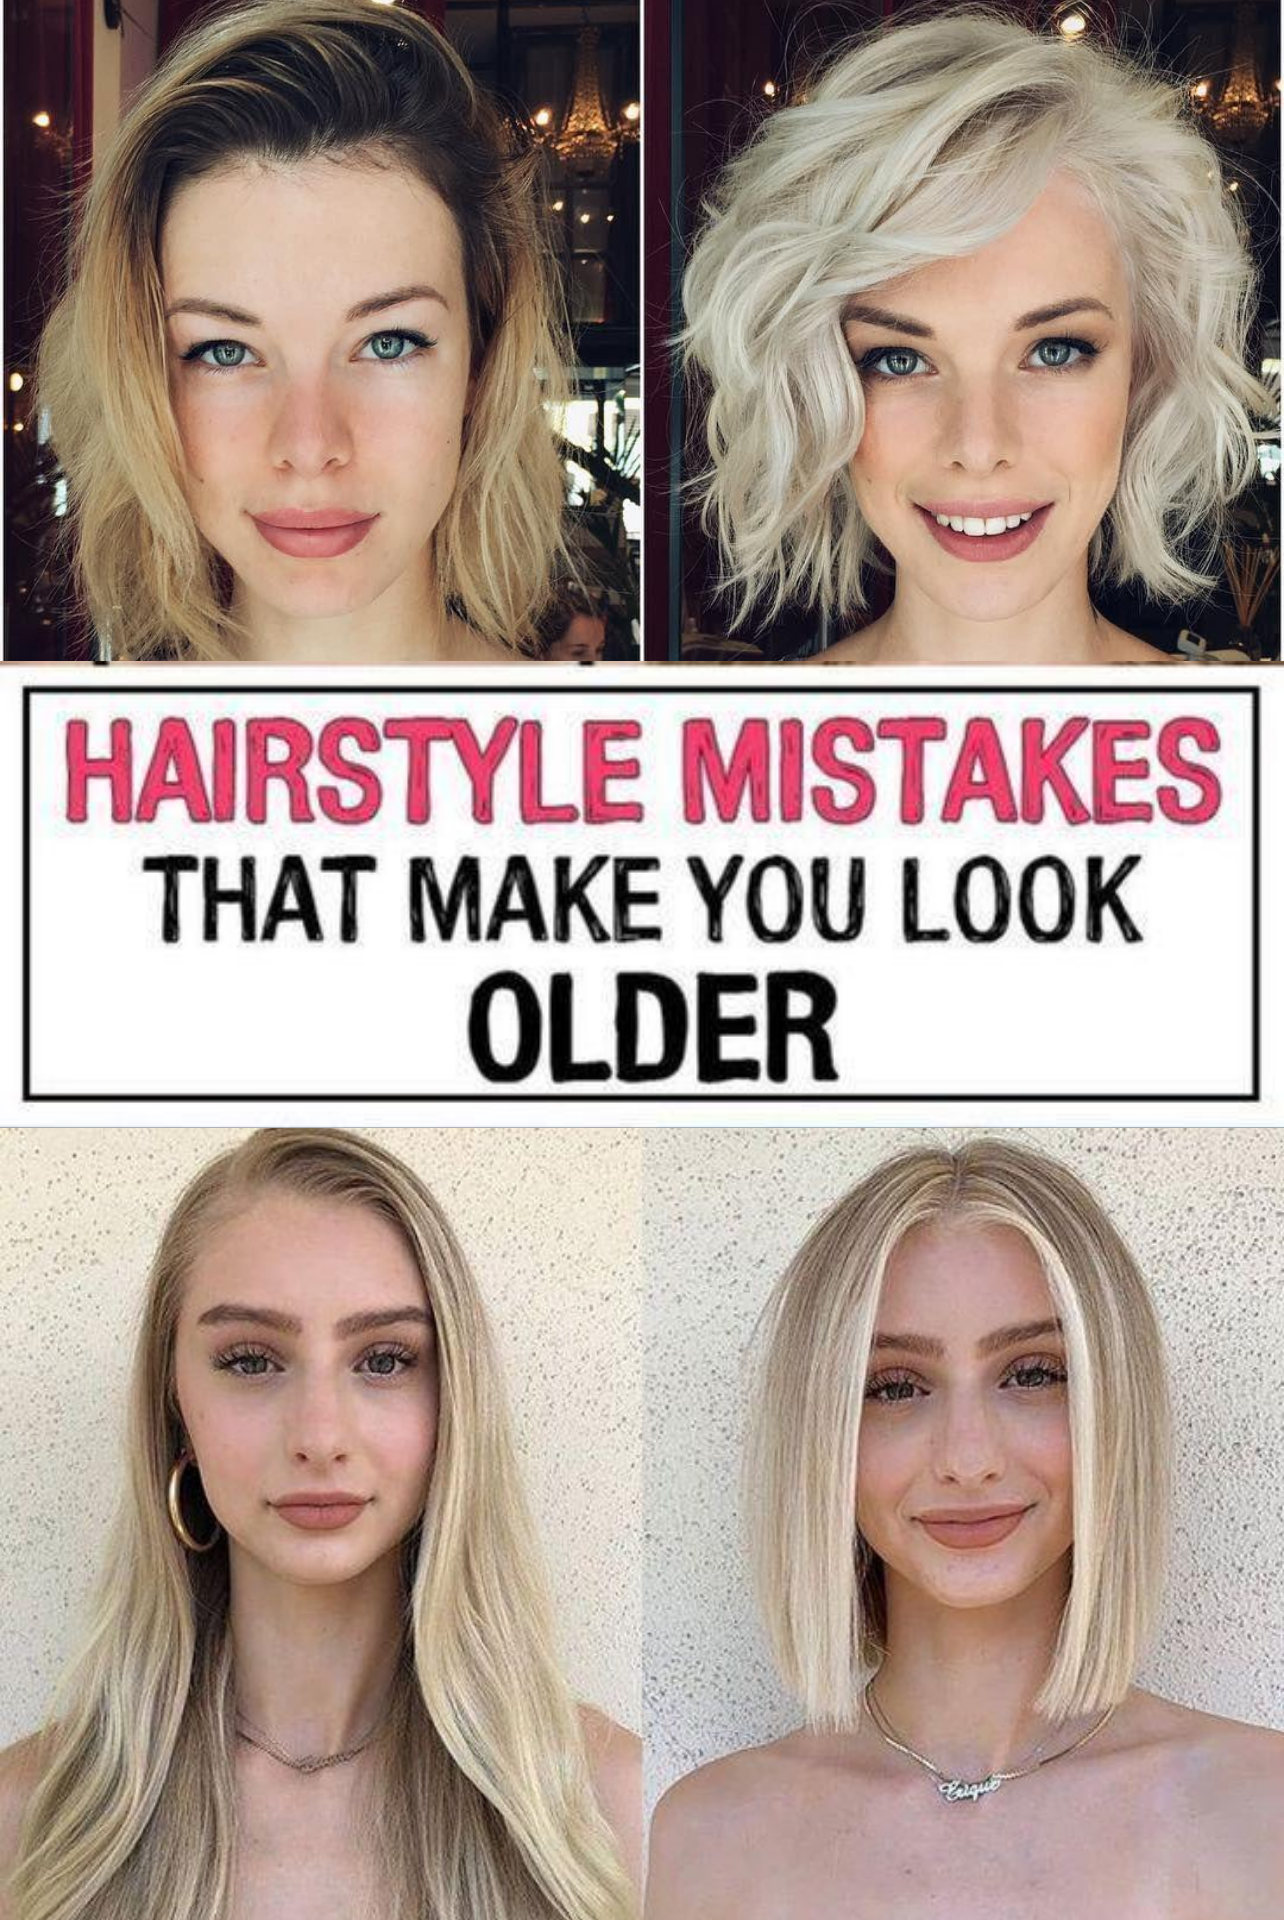 11 Hairstyle Mistakes That Are Aging You In 2020 Mom Hairstyles Hair Mistakes Hair Advice